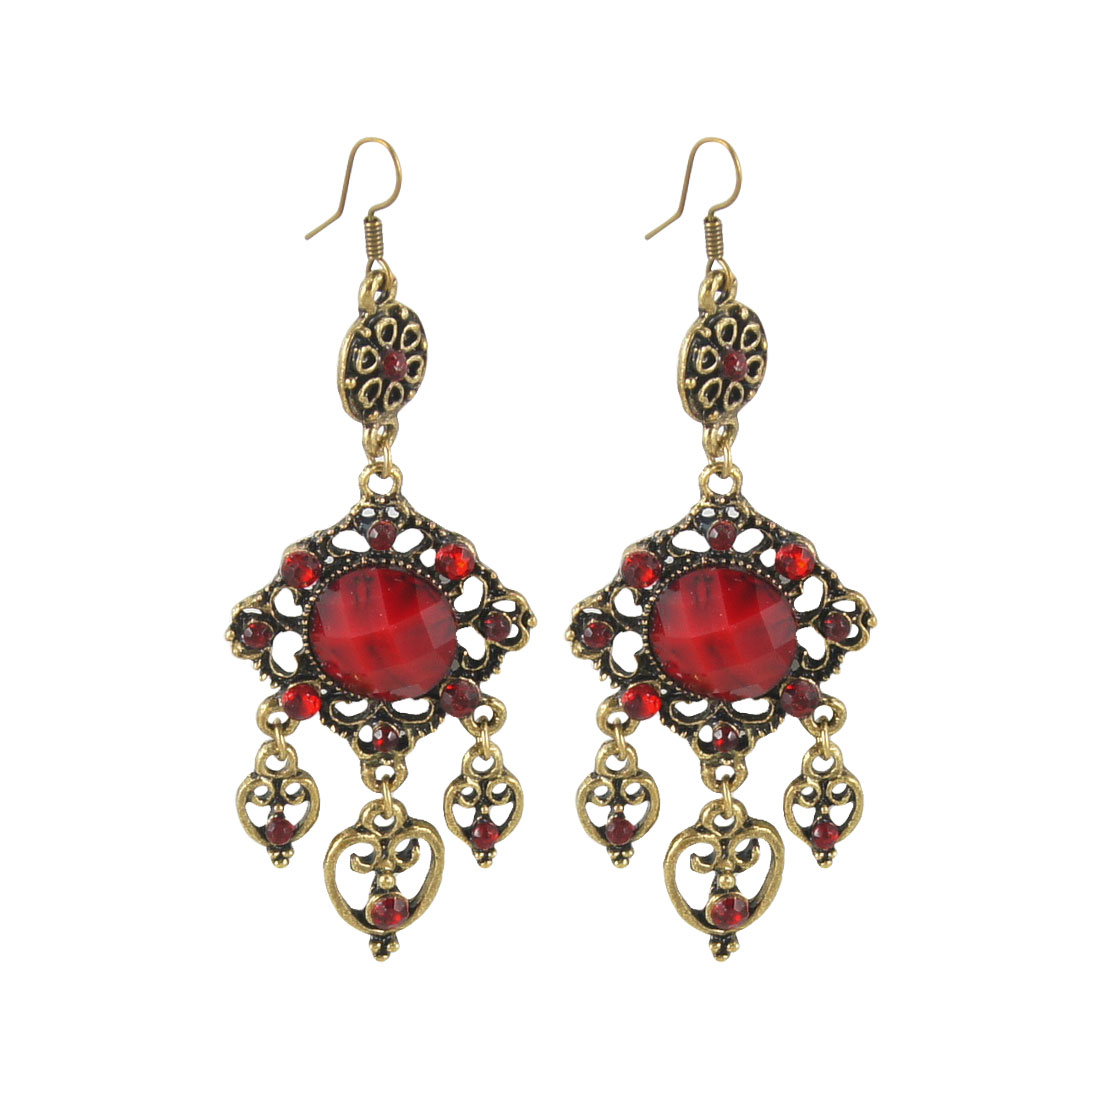 Red Plastic Beads Detailing Bronze Tone Rhombus Pendent Fish Hook Earrings